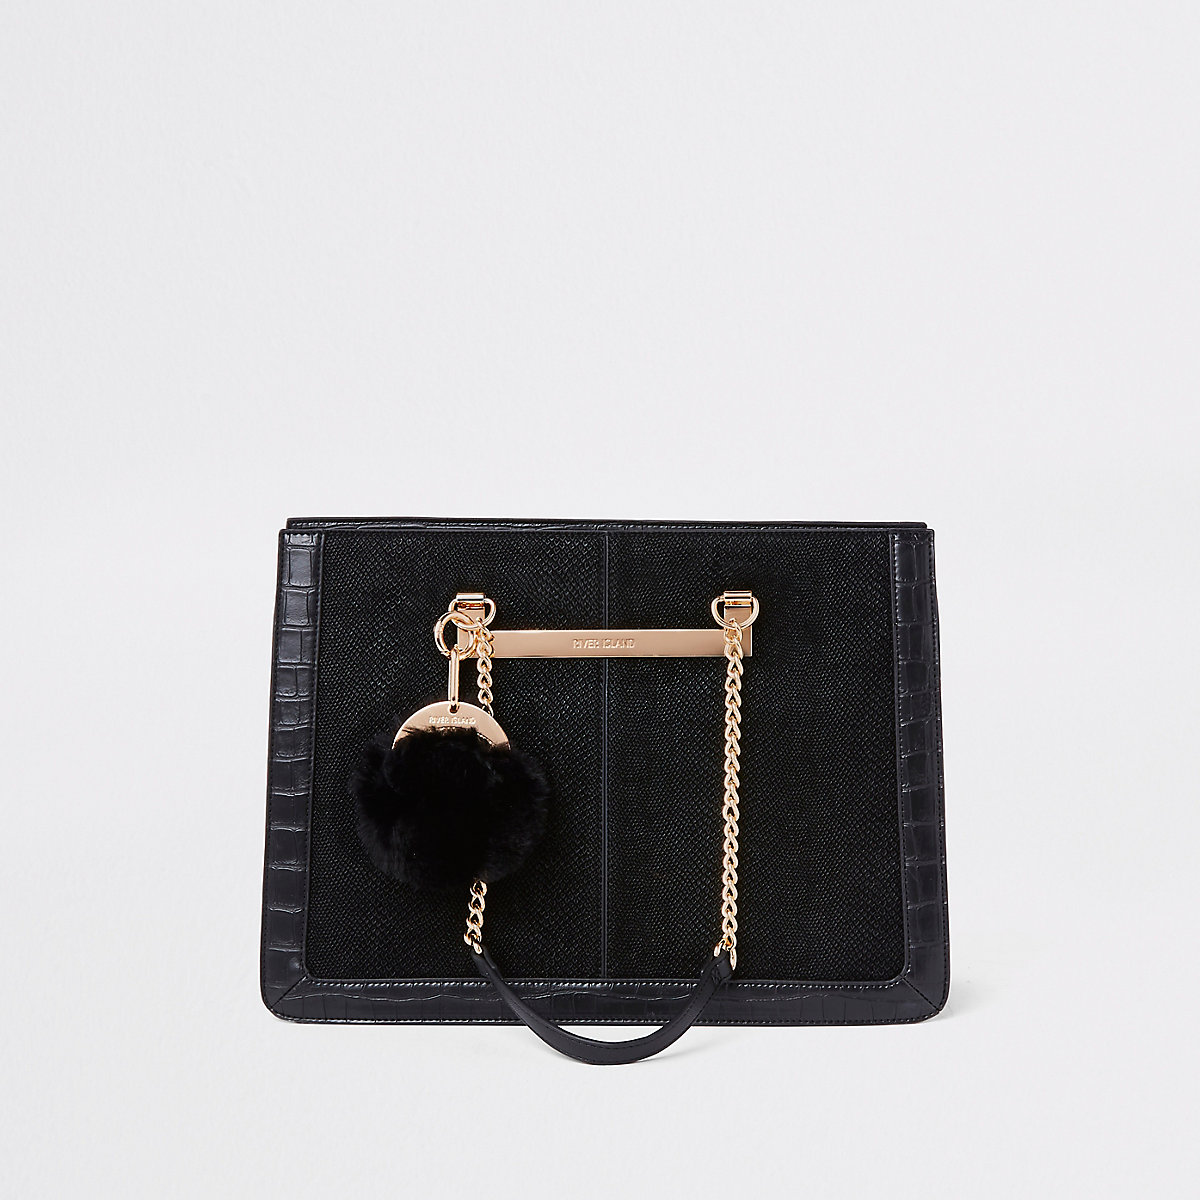 Black chain handle pom pom tote bag